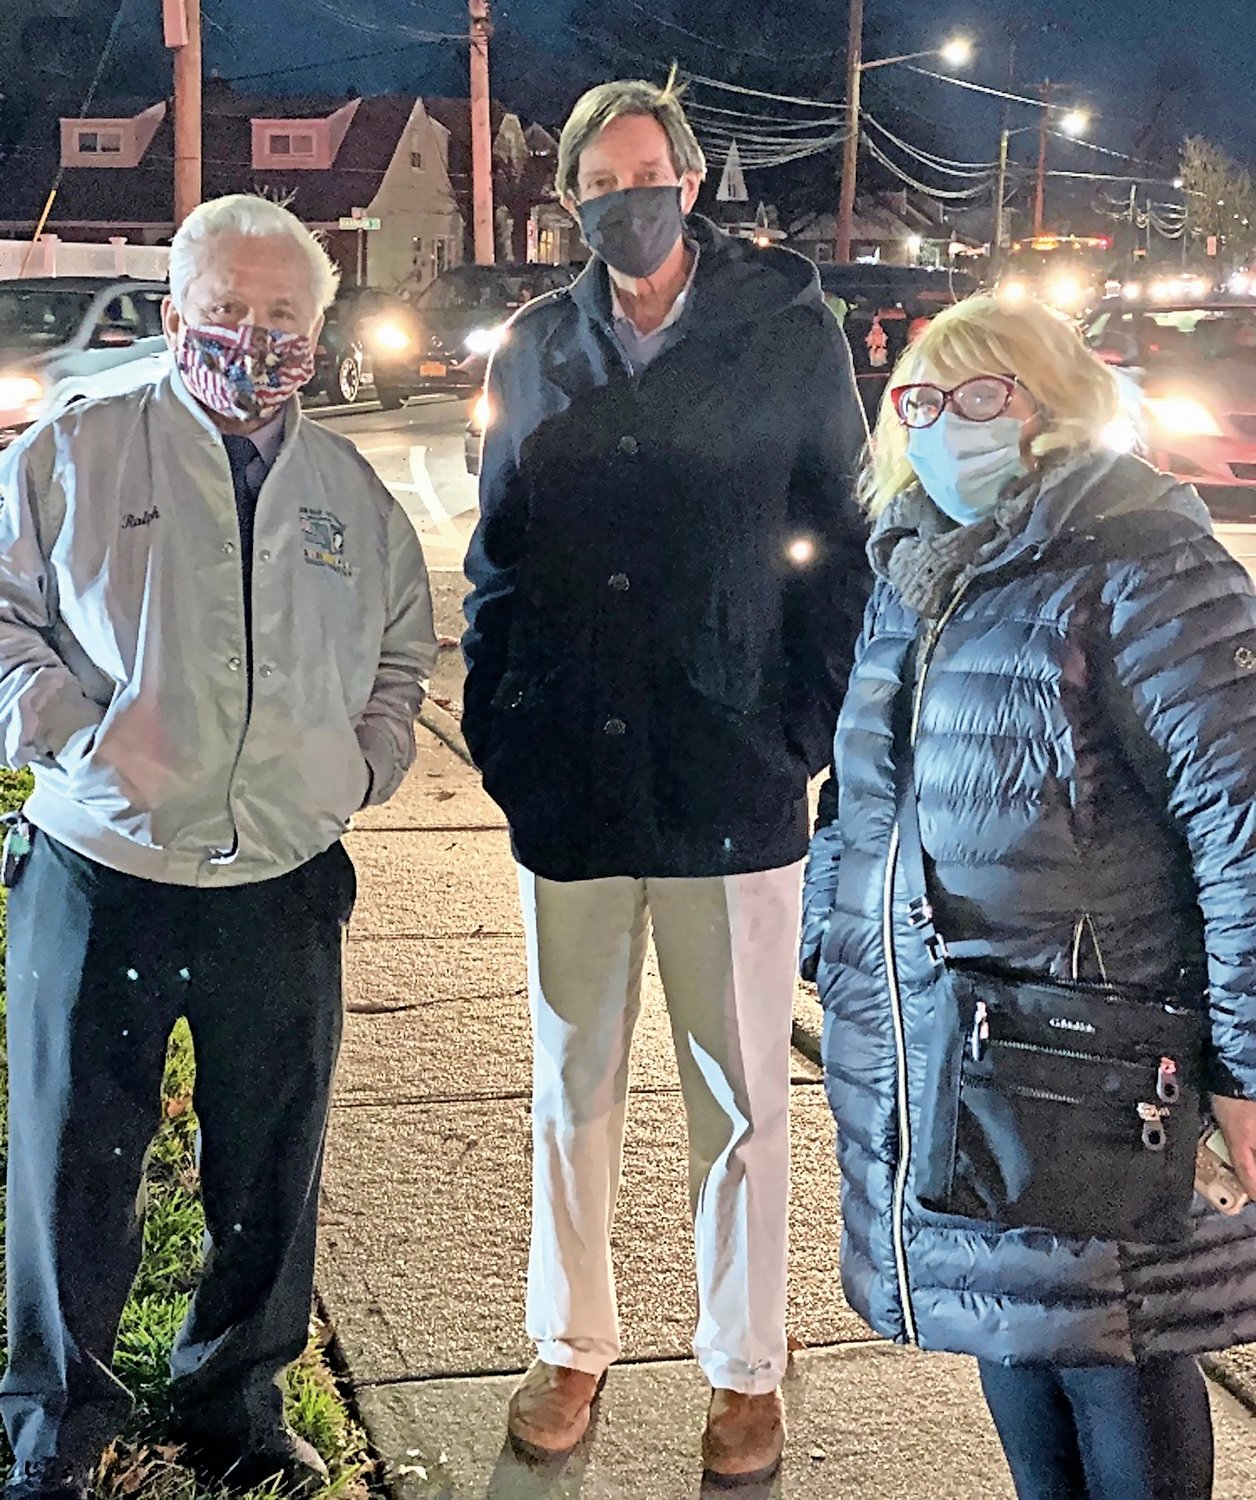 Julie Marchesella, right, has helped run the Elmont Chamber of Commerce's annual Christmas tree lighting ceremony over her 25 years as a chamber member. She was with board members Ralph Esposito and Pat Boyle at the ceremony in December.